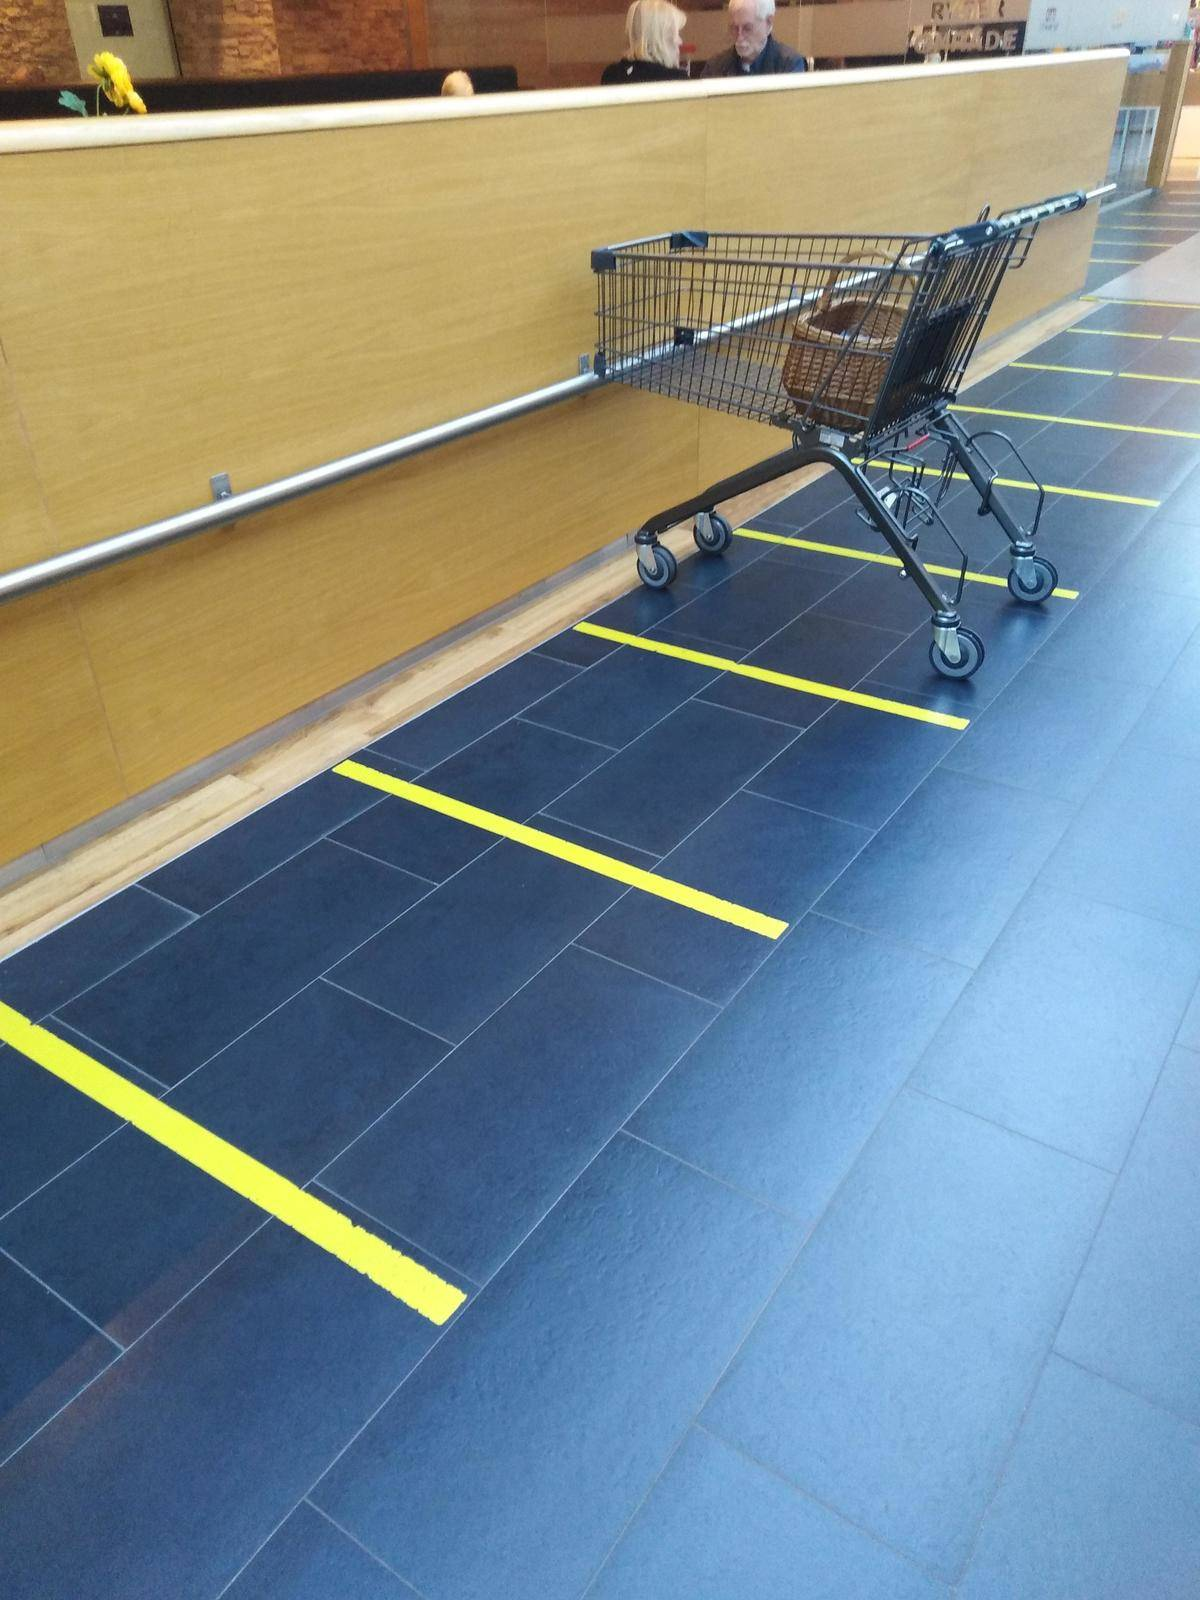 store with parking spots for shopping carts